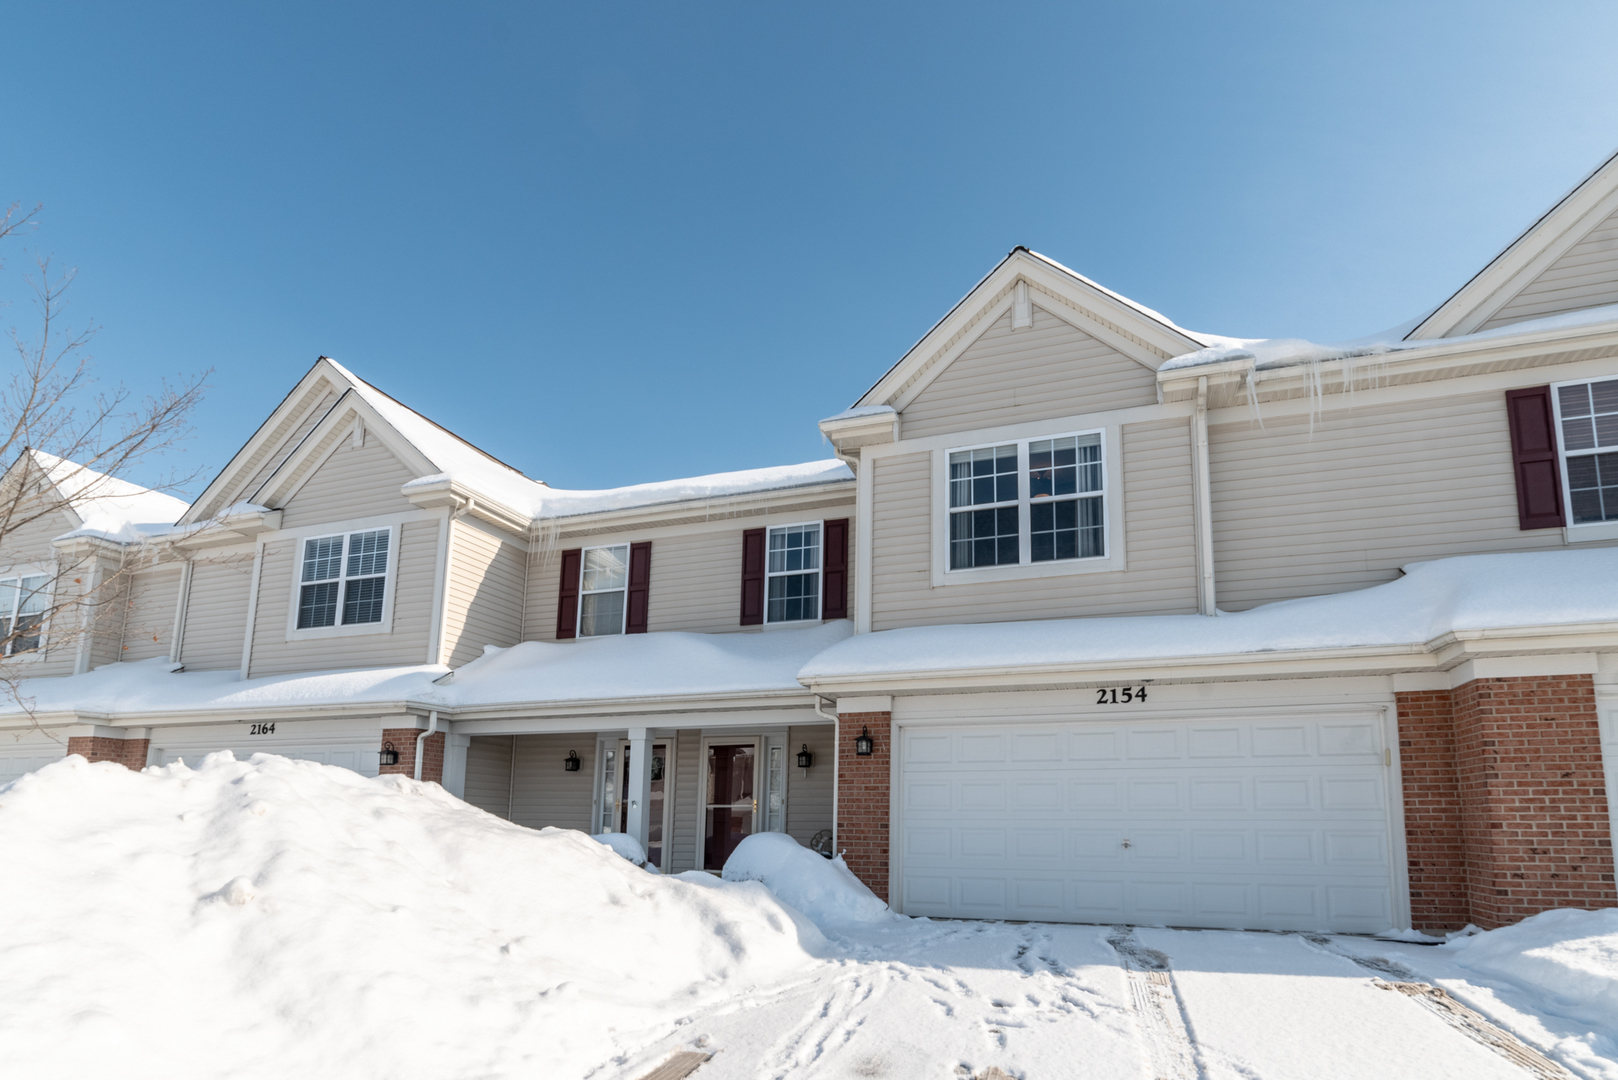 Photo for 2154 Daybreak Drive, LAKE IN THE HILLS, IL 60156 (MLS # 10265833)